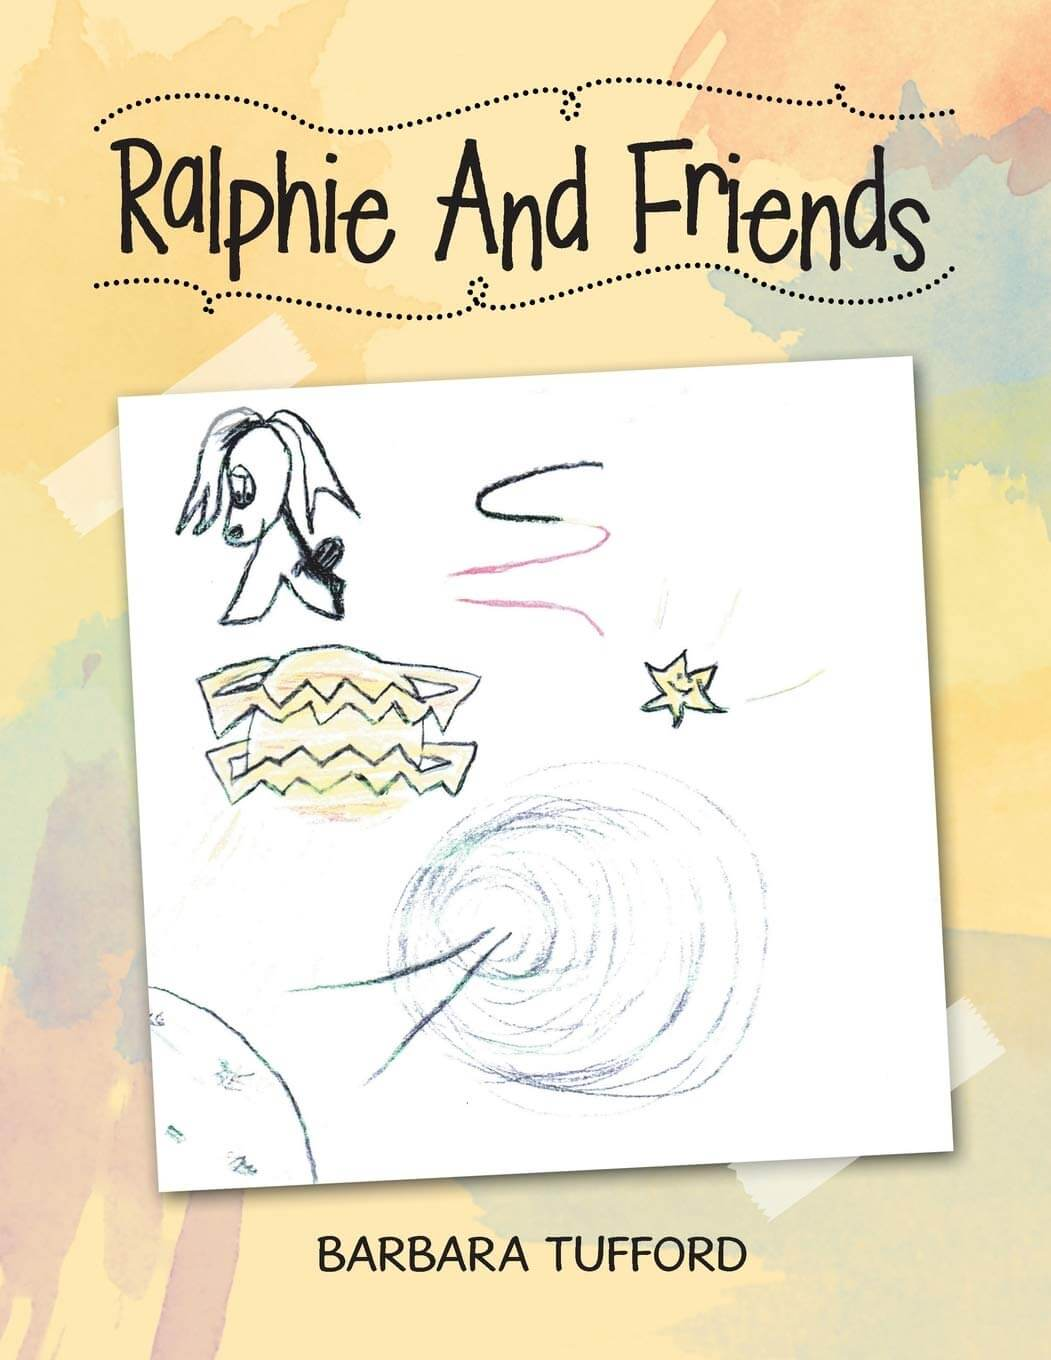 Ralphie and Friends